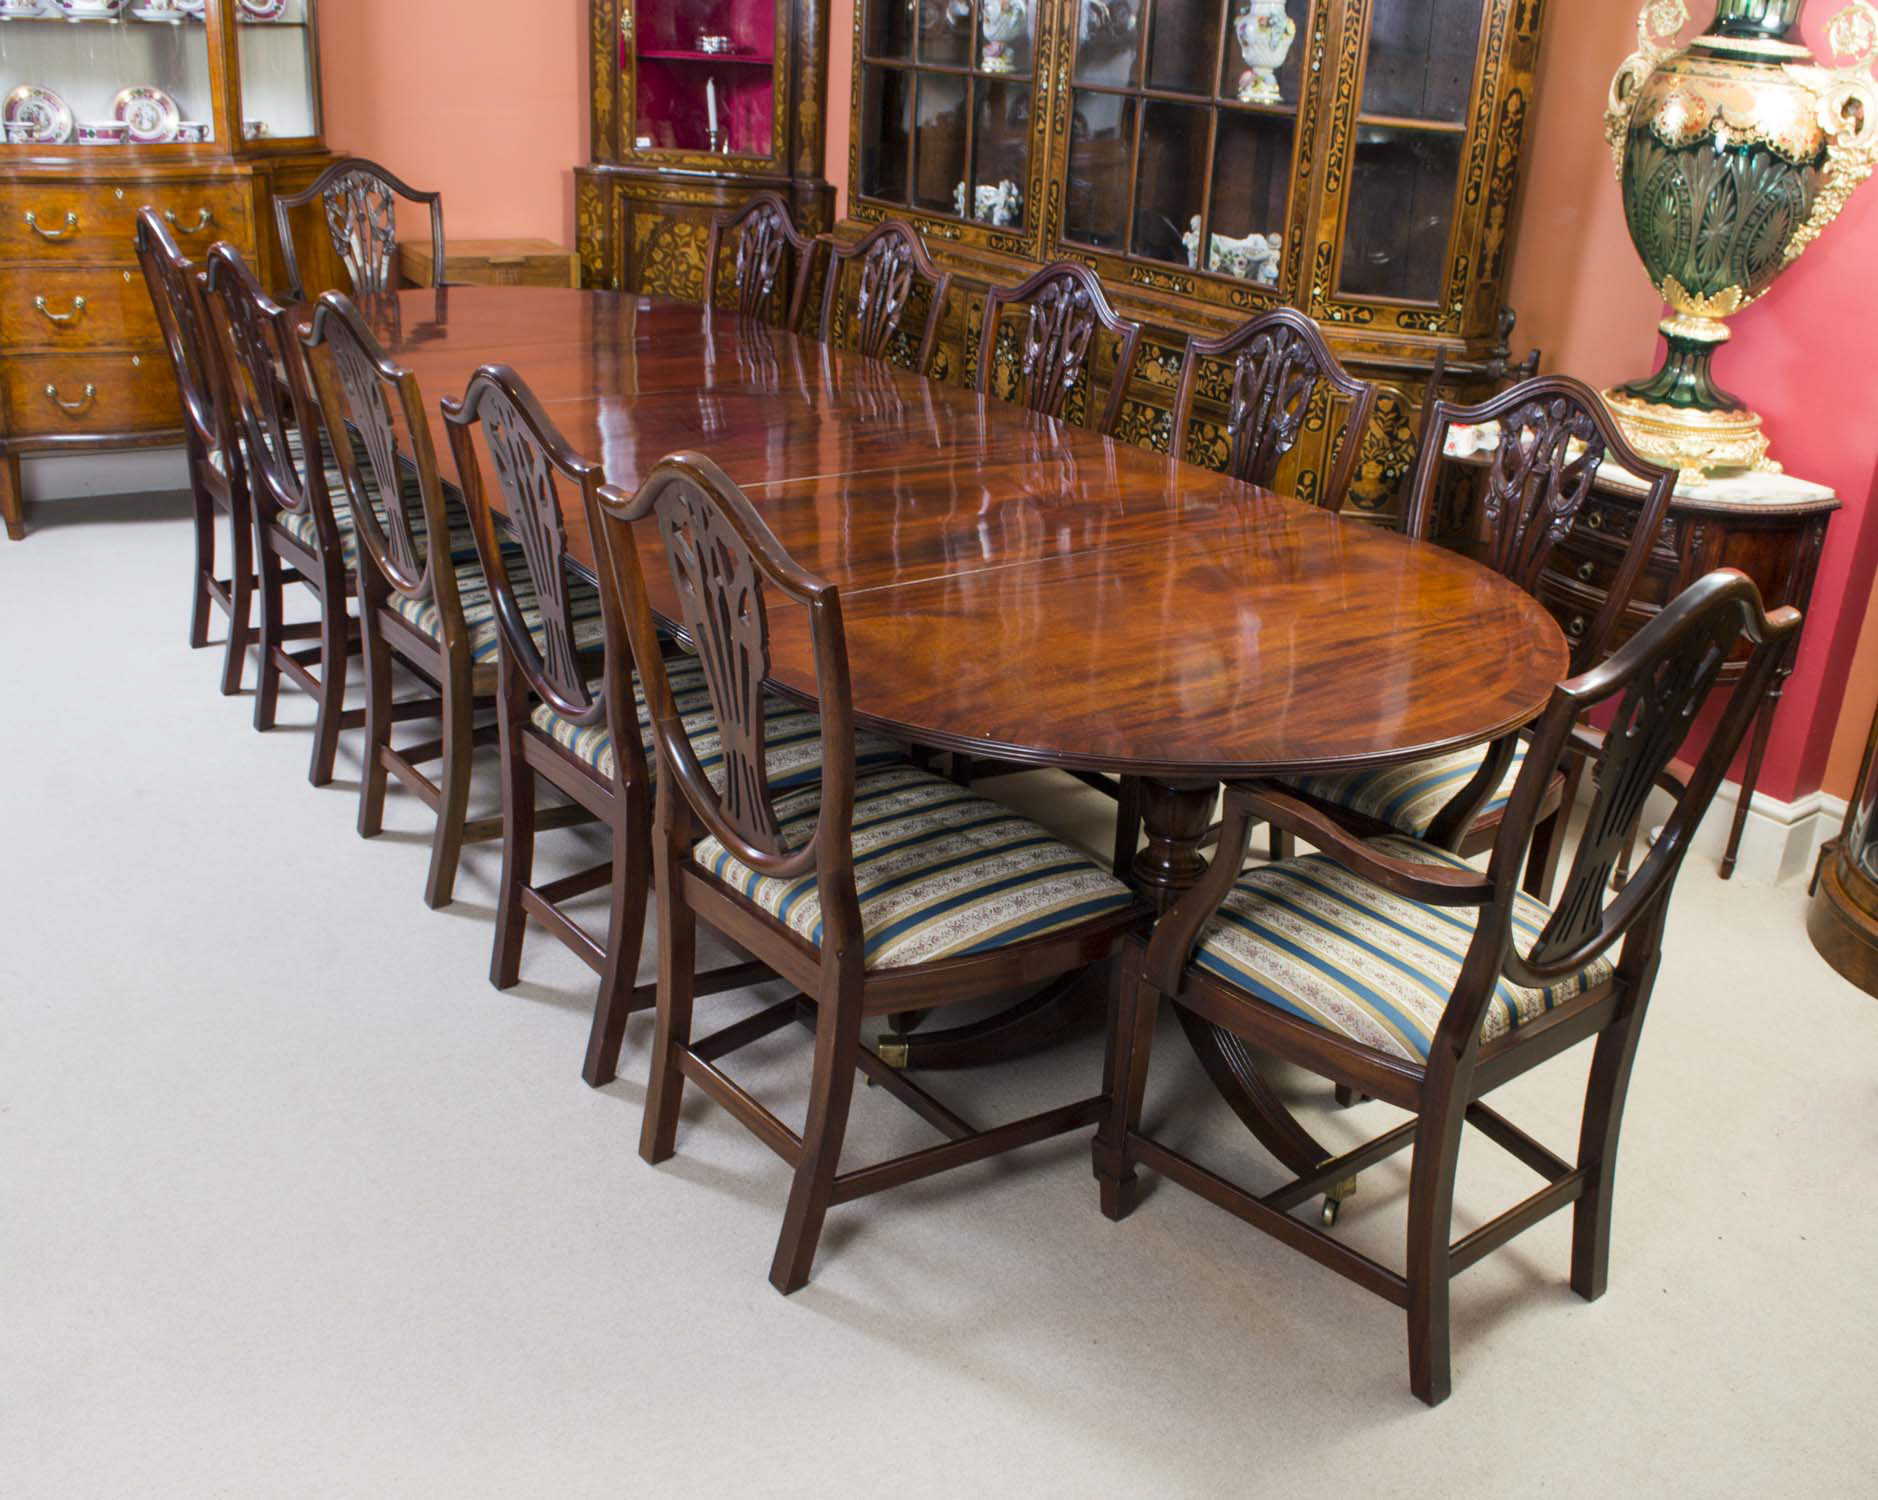 Antique Regency Dining Table 12 Chairs